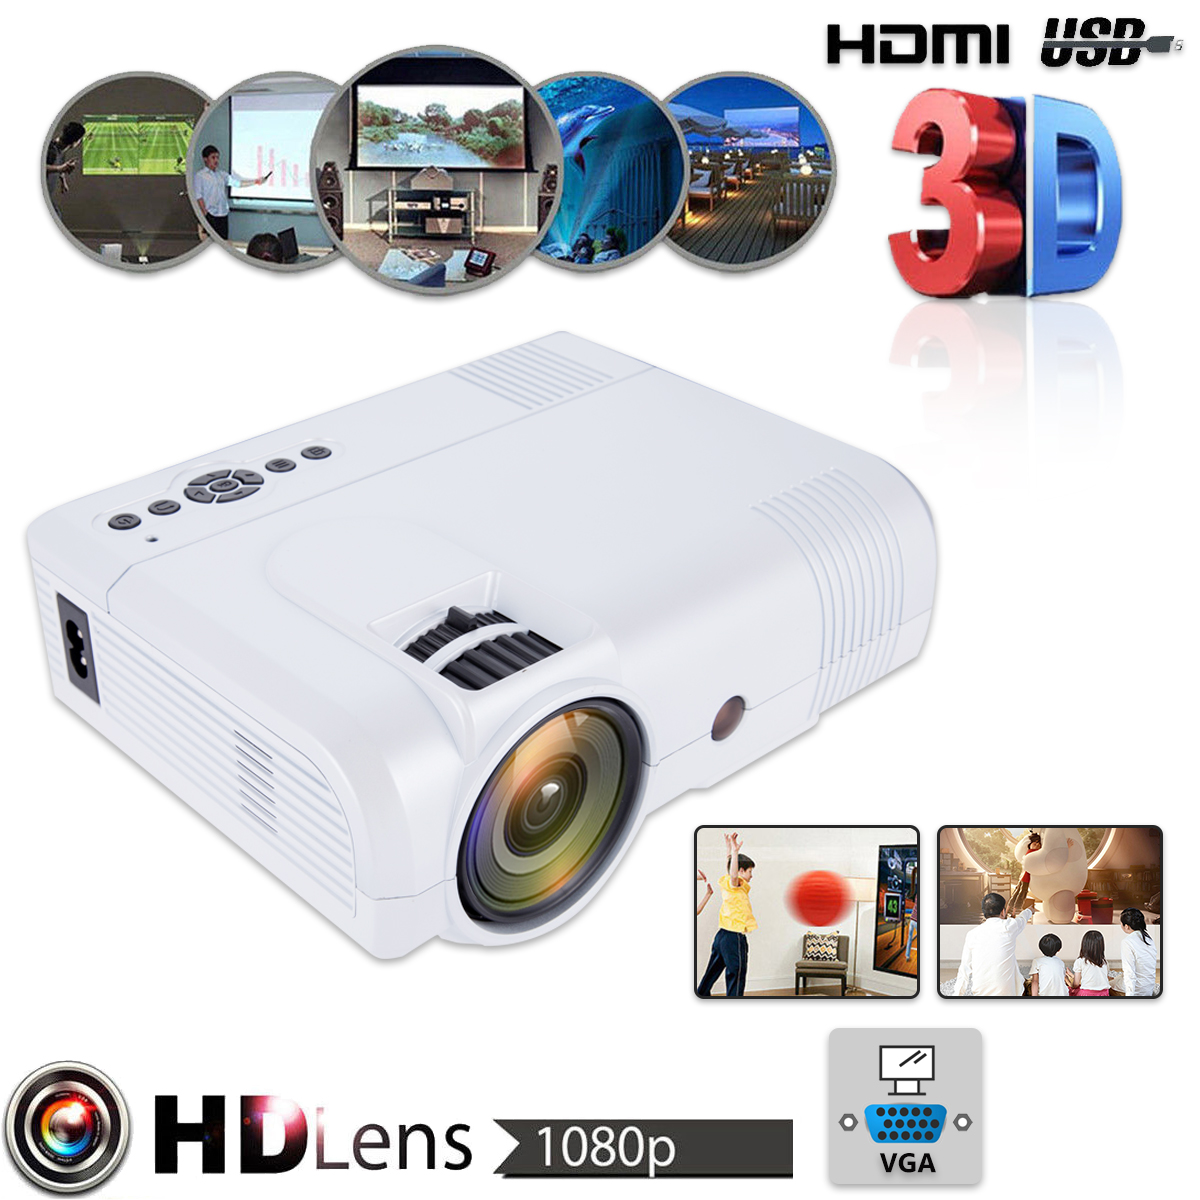 3D 1080P Mini Projector Full HD L8 3000 lumens LED Cinema Video Digital HD Home Theater Projector with AV Cable Power Cable стоимость